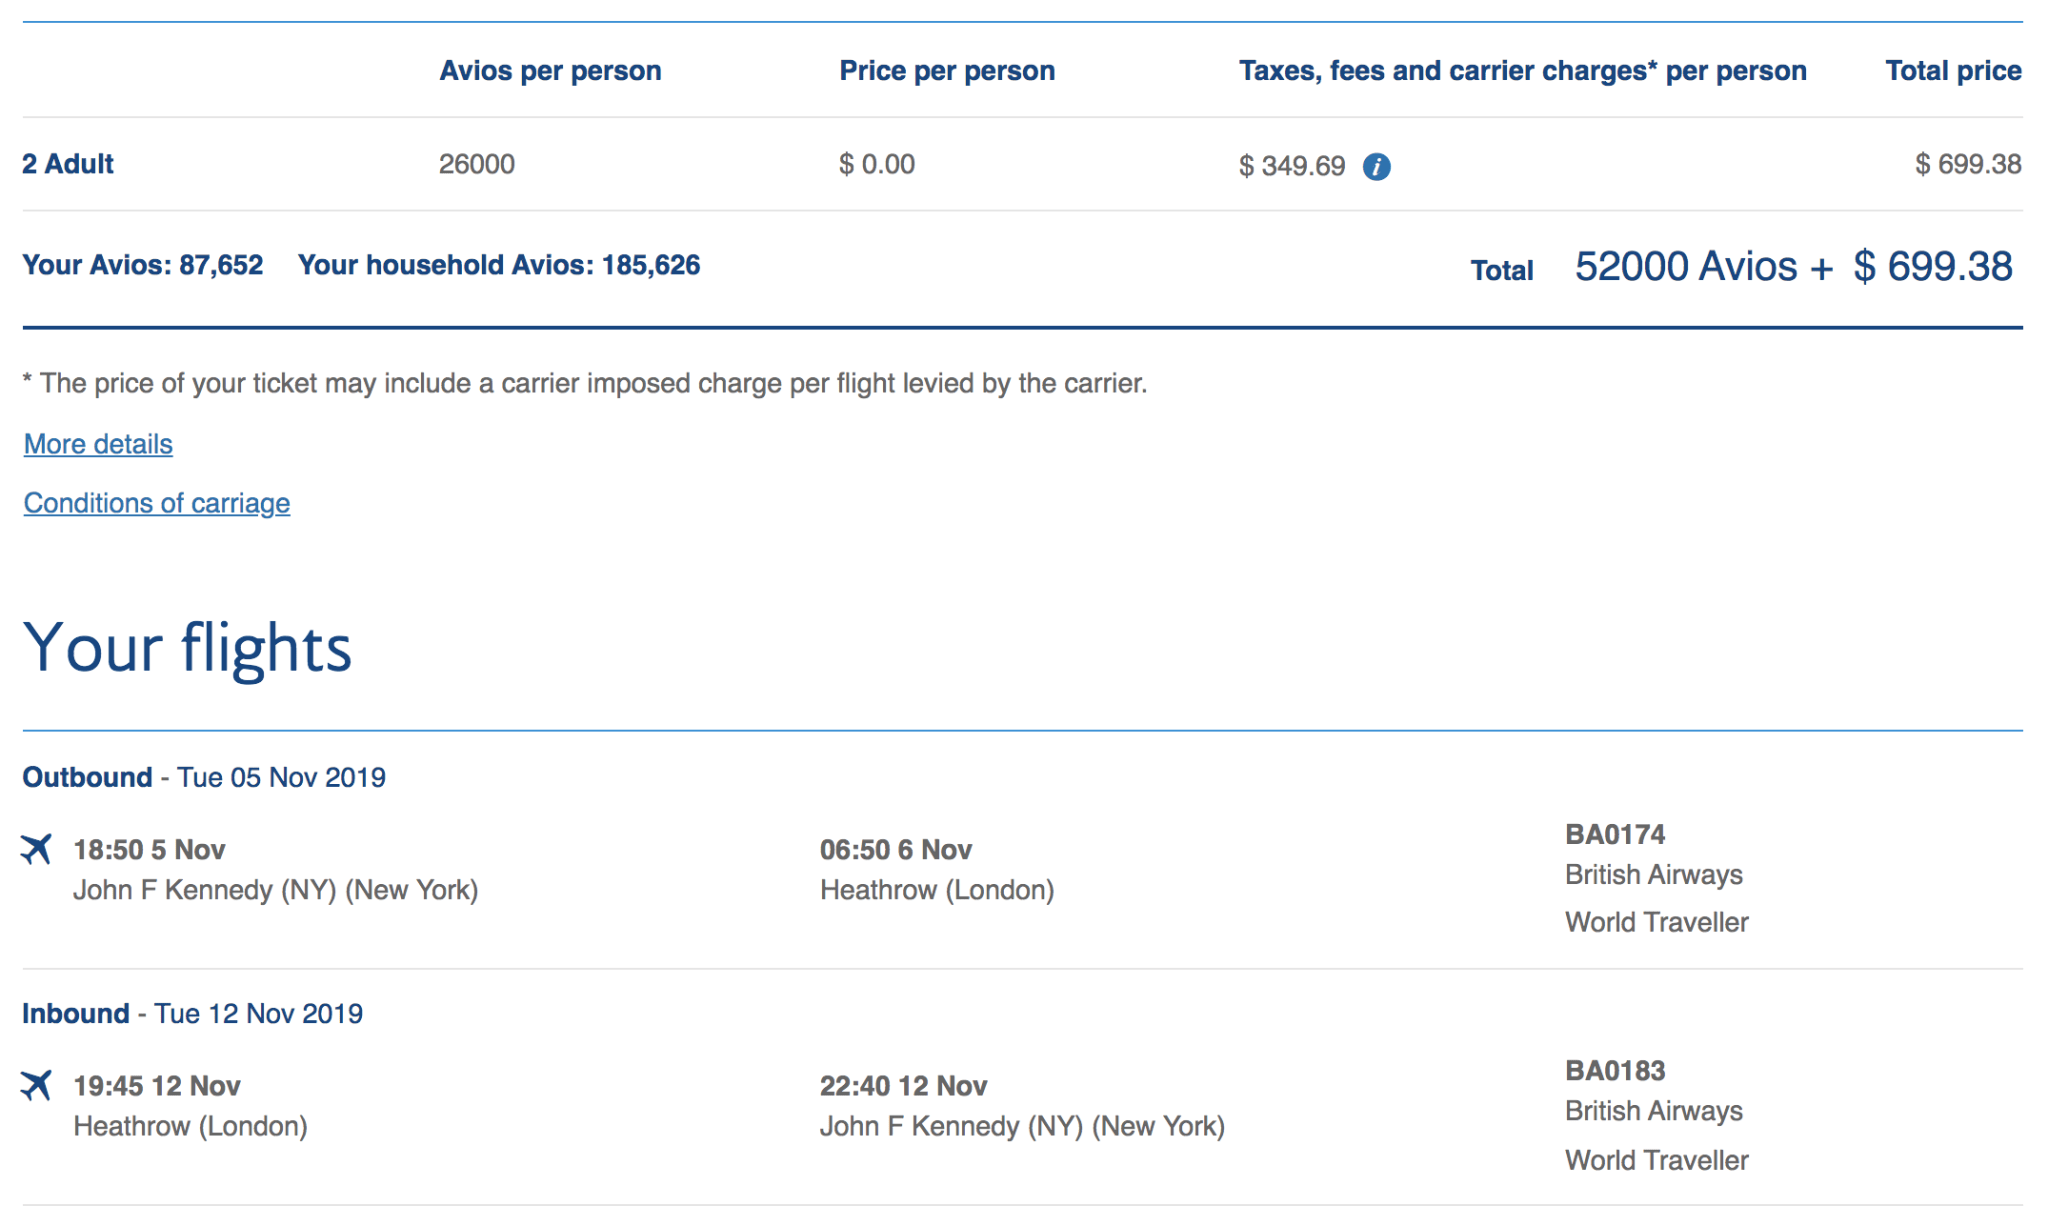 The taxes and fees for two economy award tickets on a round-trip British Airways itinerary from JFK to LHR is $700 in addition to the 52,000 Avios points.